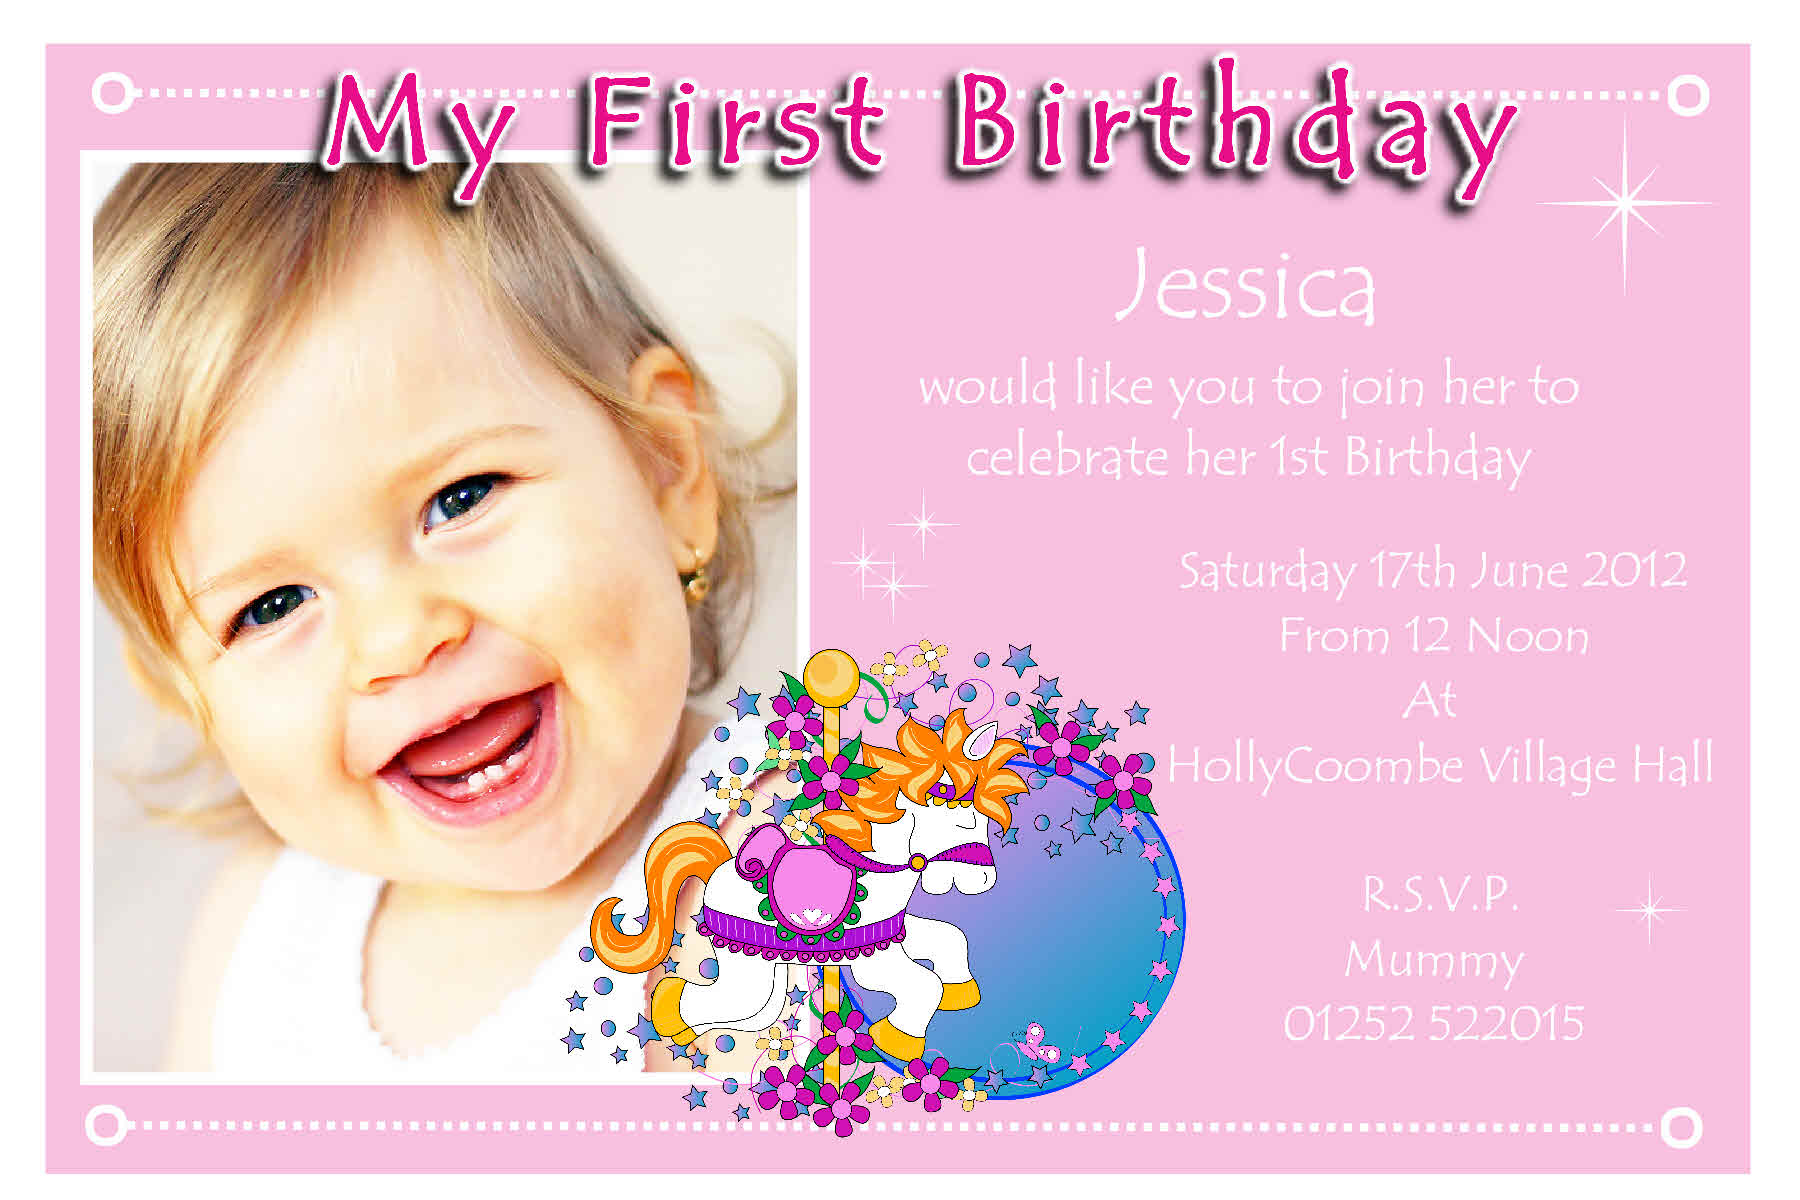 design your own birthday invitation cards free ; free-online-first-birthday-invitation-cards-to-inspire-you-How-To-Make-Your-Own-Birthday-Invitations-Looks-Interesting-11